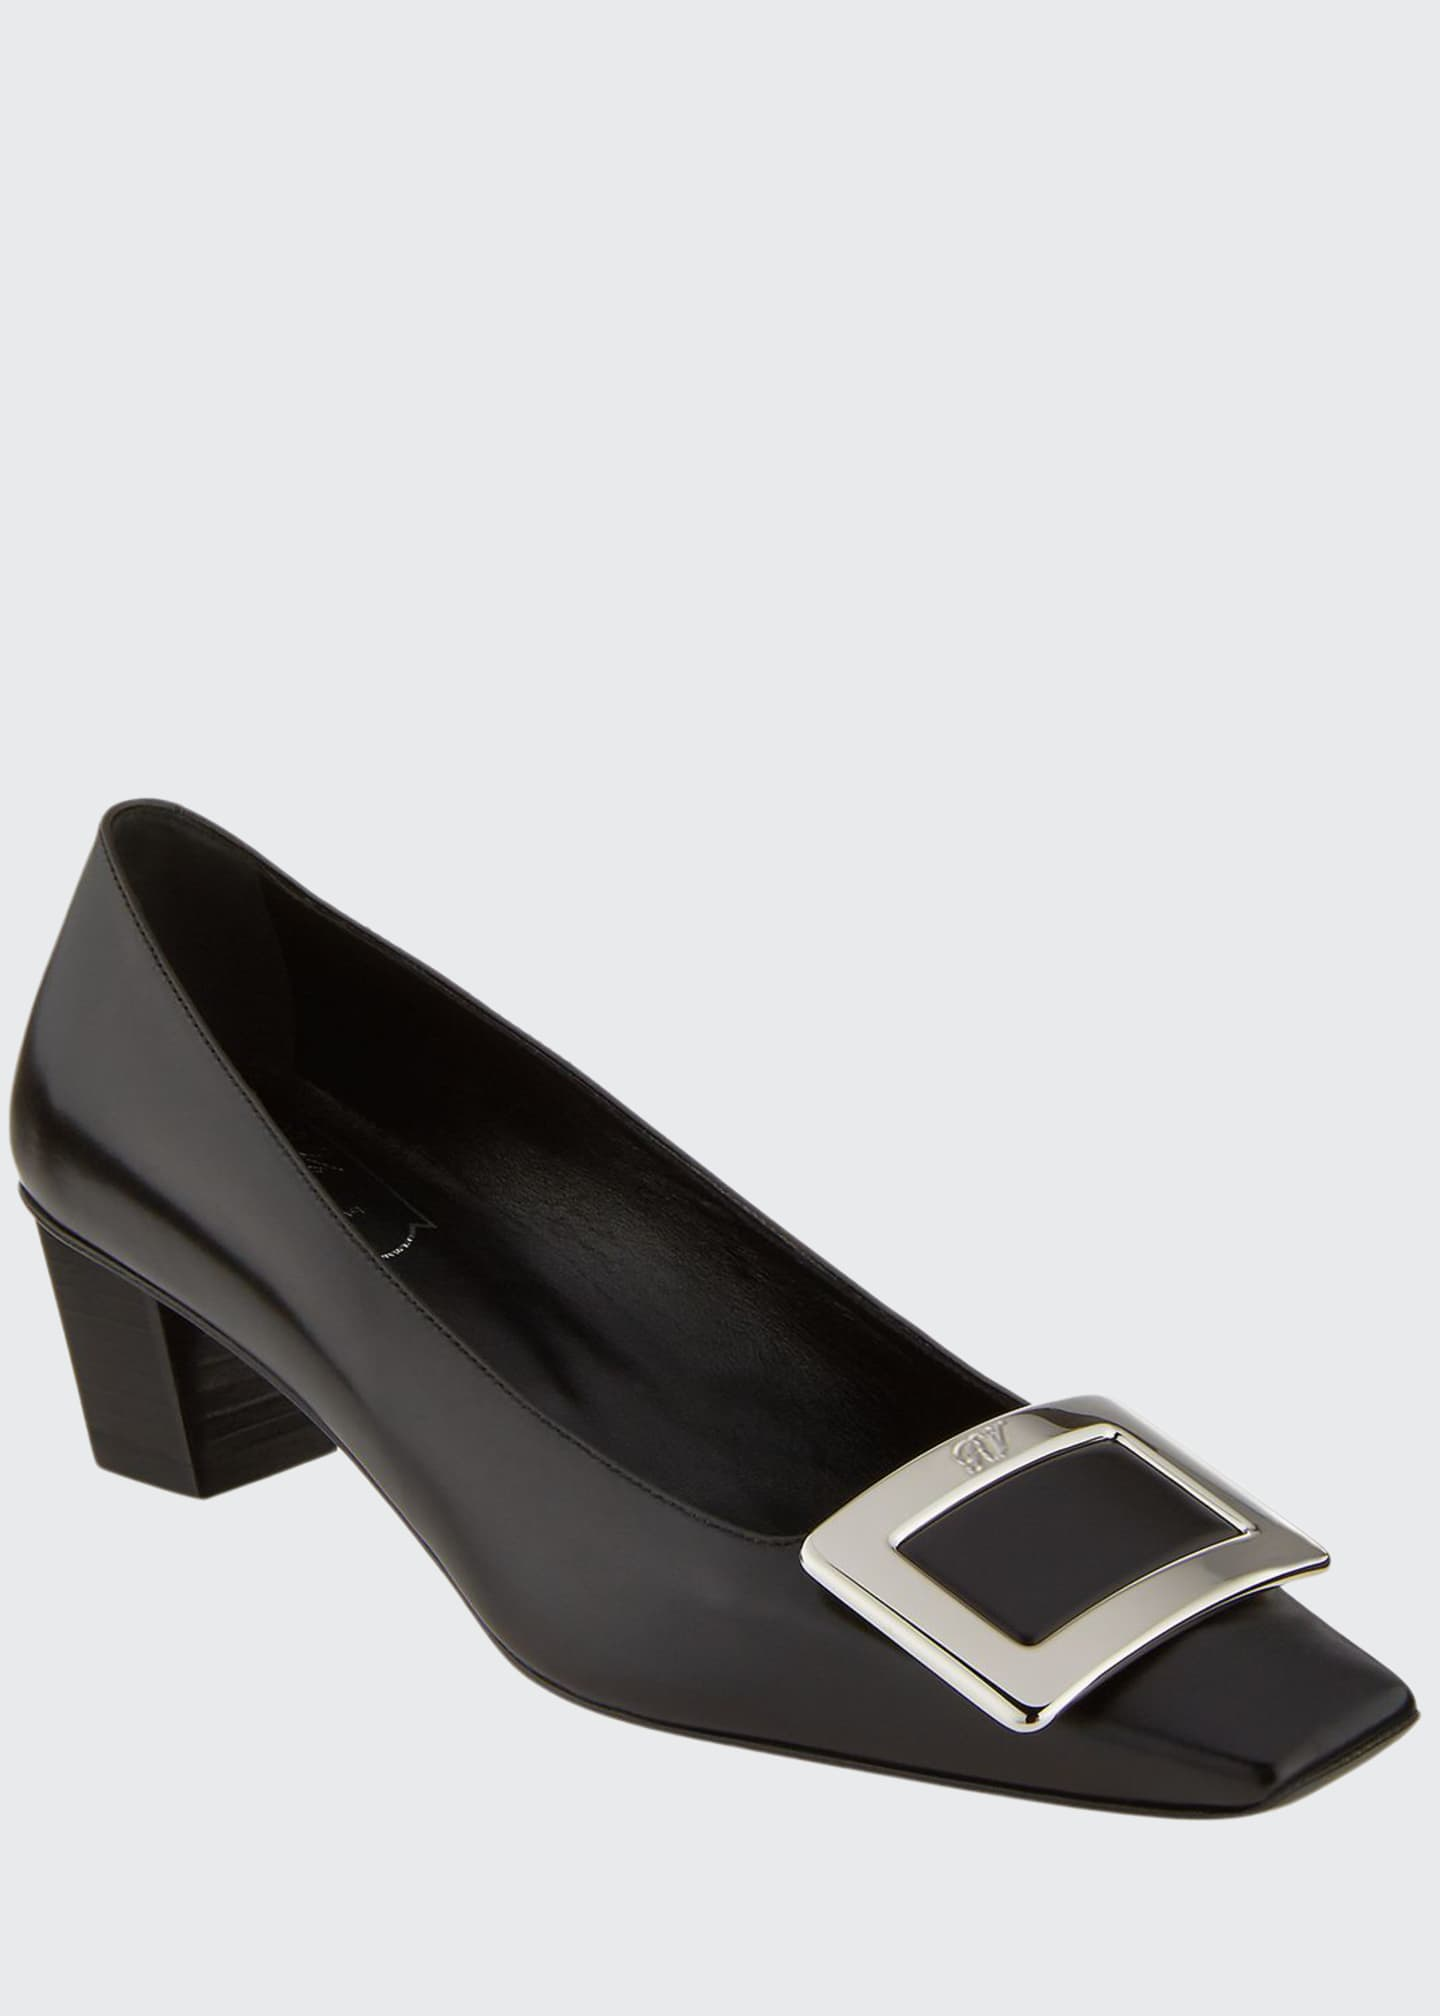 Roger Vivier Decollete Belle Vivier Leather Ballerina Pumps,